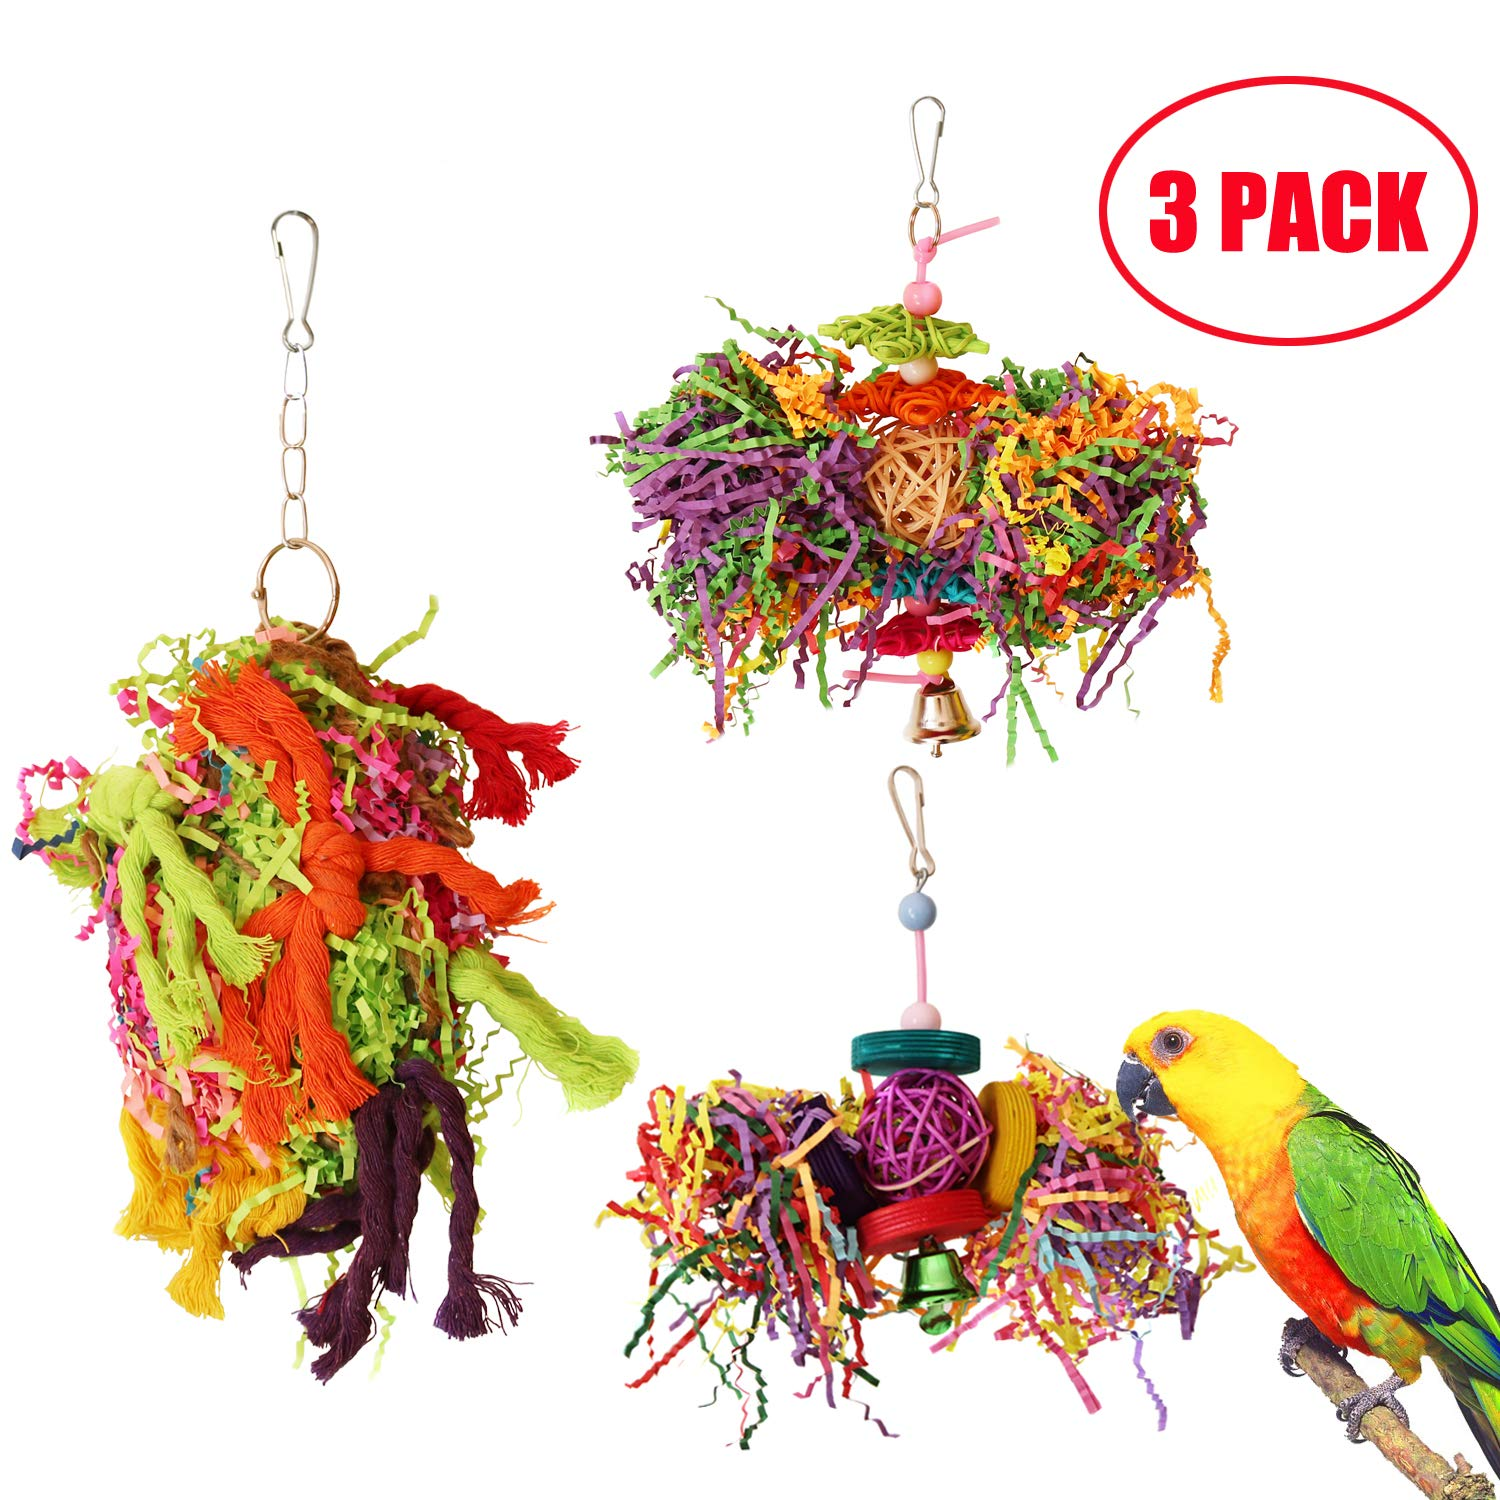 BWOGUE Bird Chewing Toys Parrot Cage Shredder Toy Foraging Hanging Toy for Cockatiel Conure African Grey Amazon (3 Pack) by BWOGUE